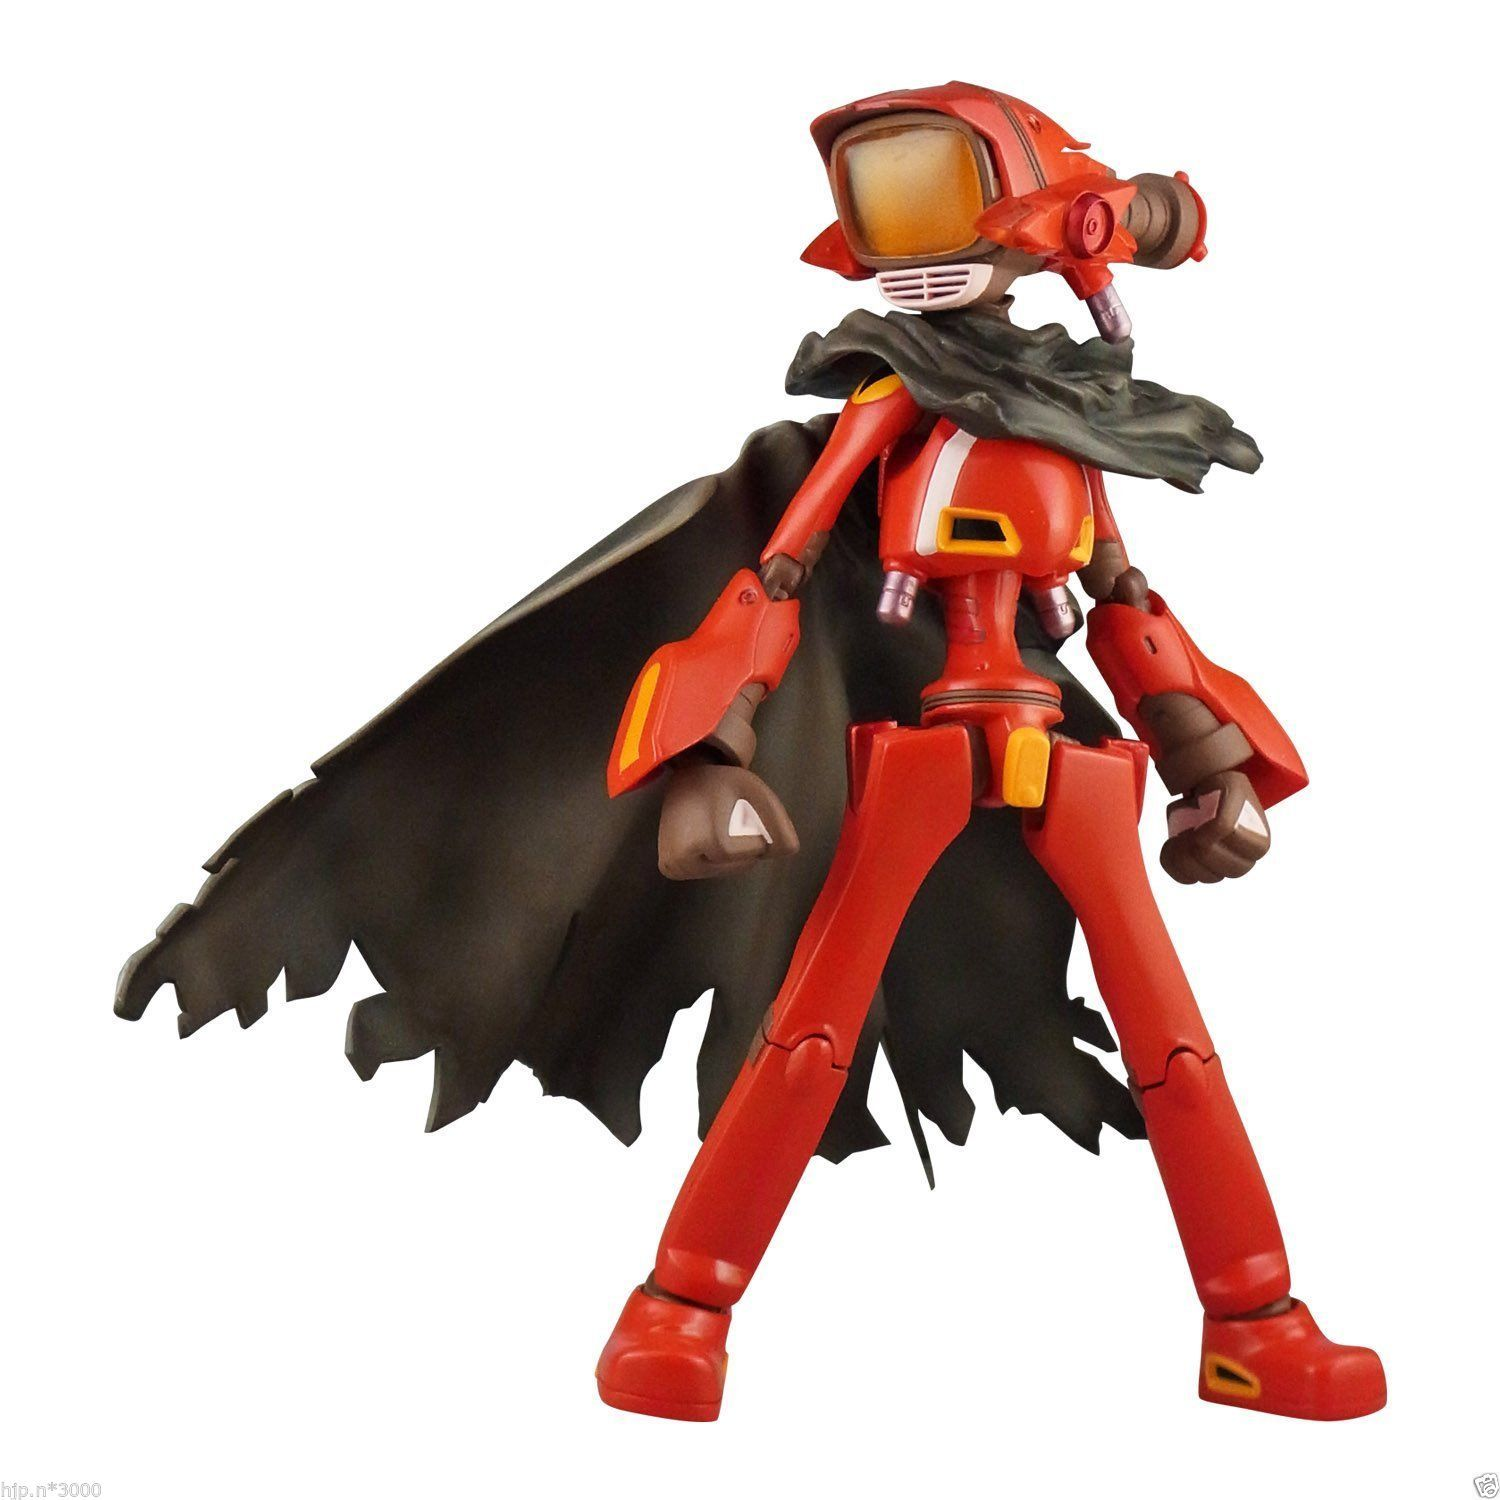 NEW PVC Action Figure Rio bone FLCL Canti Red Sentinel Toy Japanese Doll Hobby